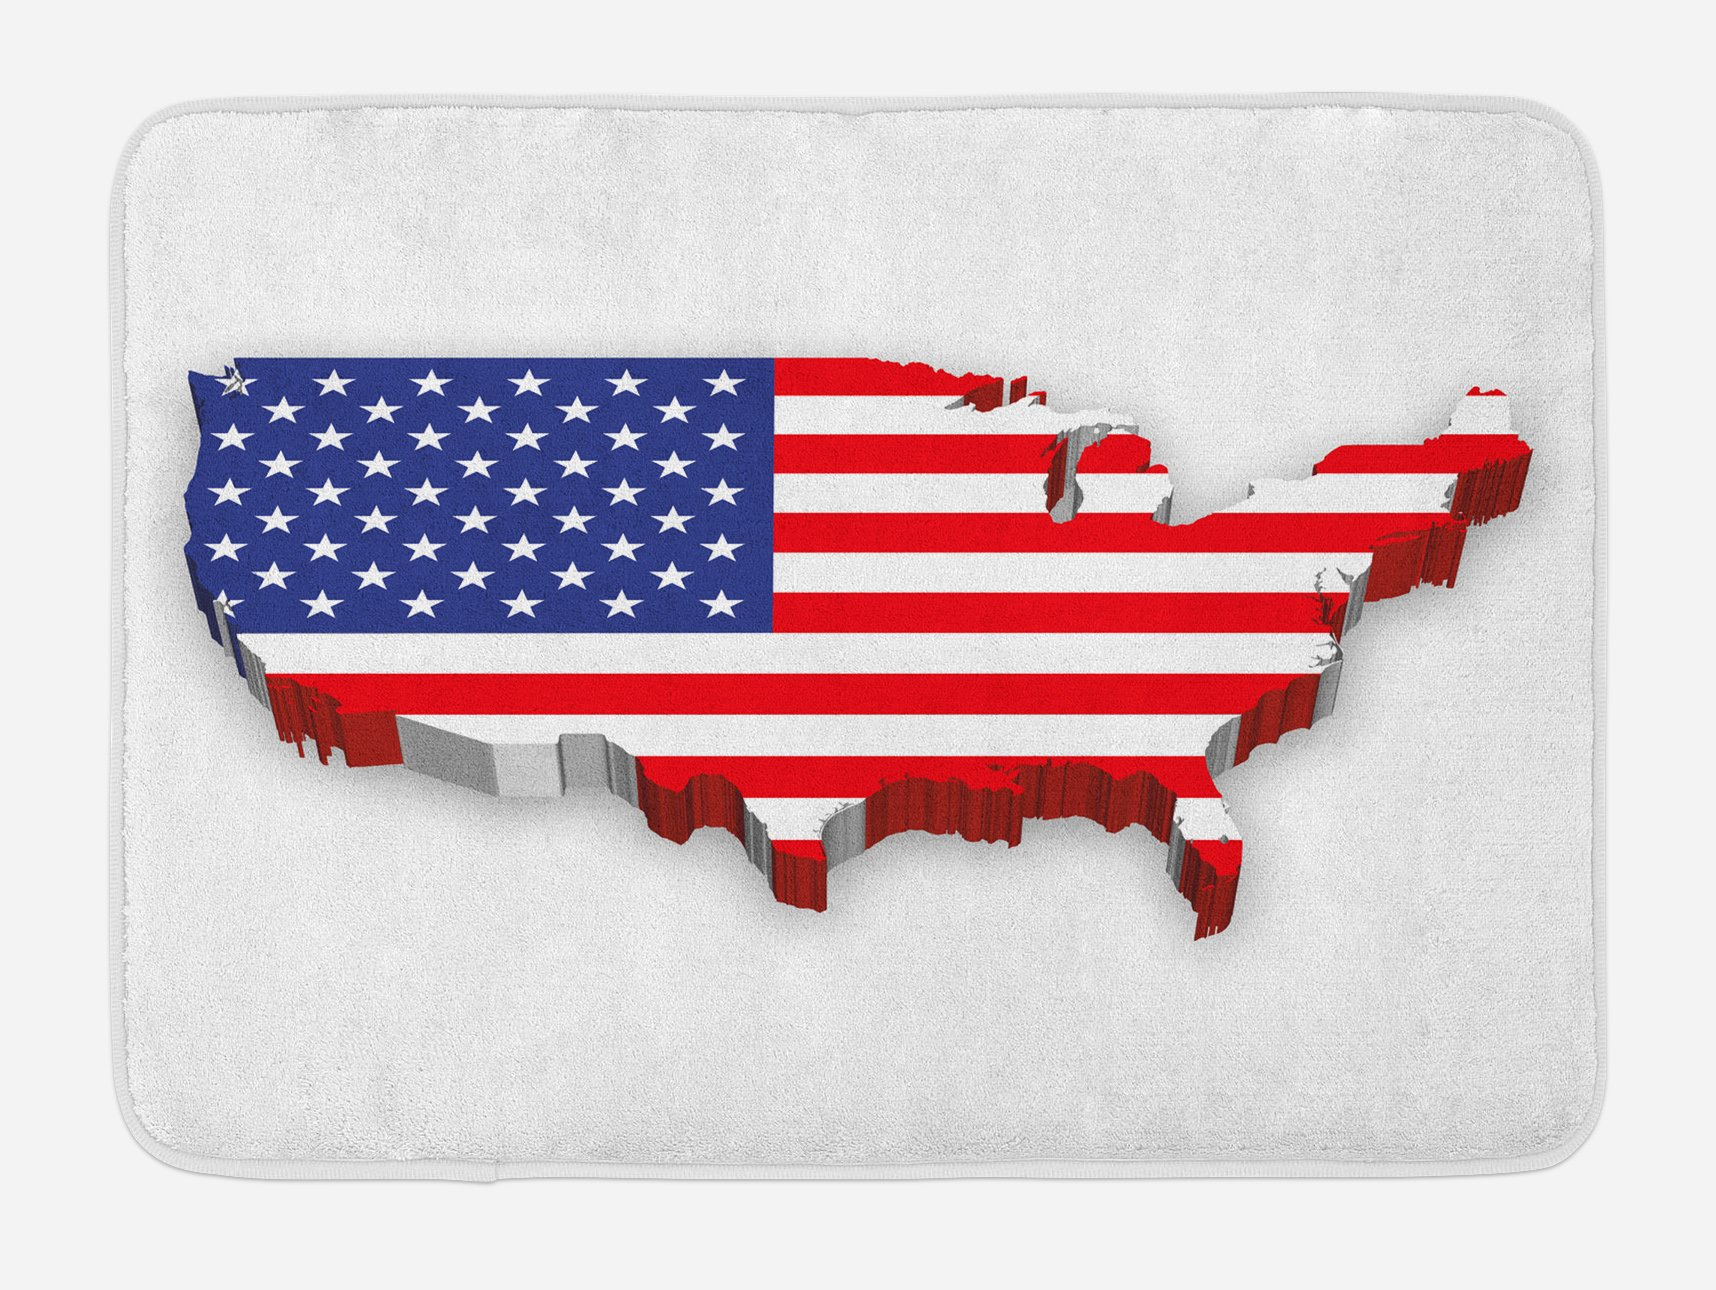 Lunarable USA Map Bath Mat, America Continent Figure with National Flag Symbol Glory Country Design, Plush Bathroom Decor Mat with Non Slip Backing, 29.5 W X 17.5 W Inches, Navy Blue Red White